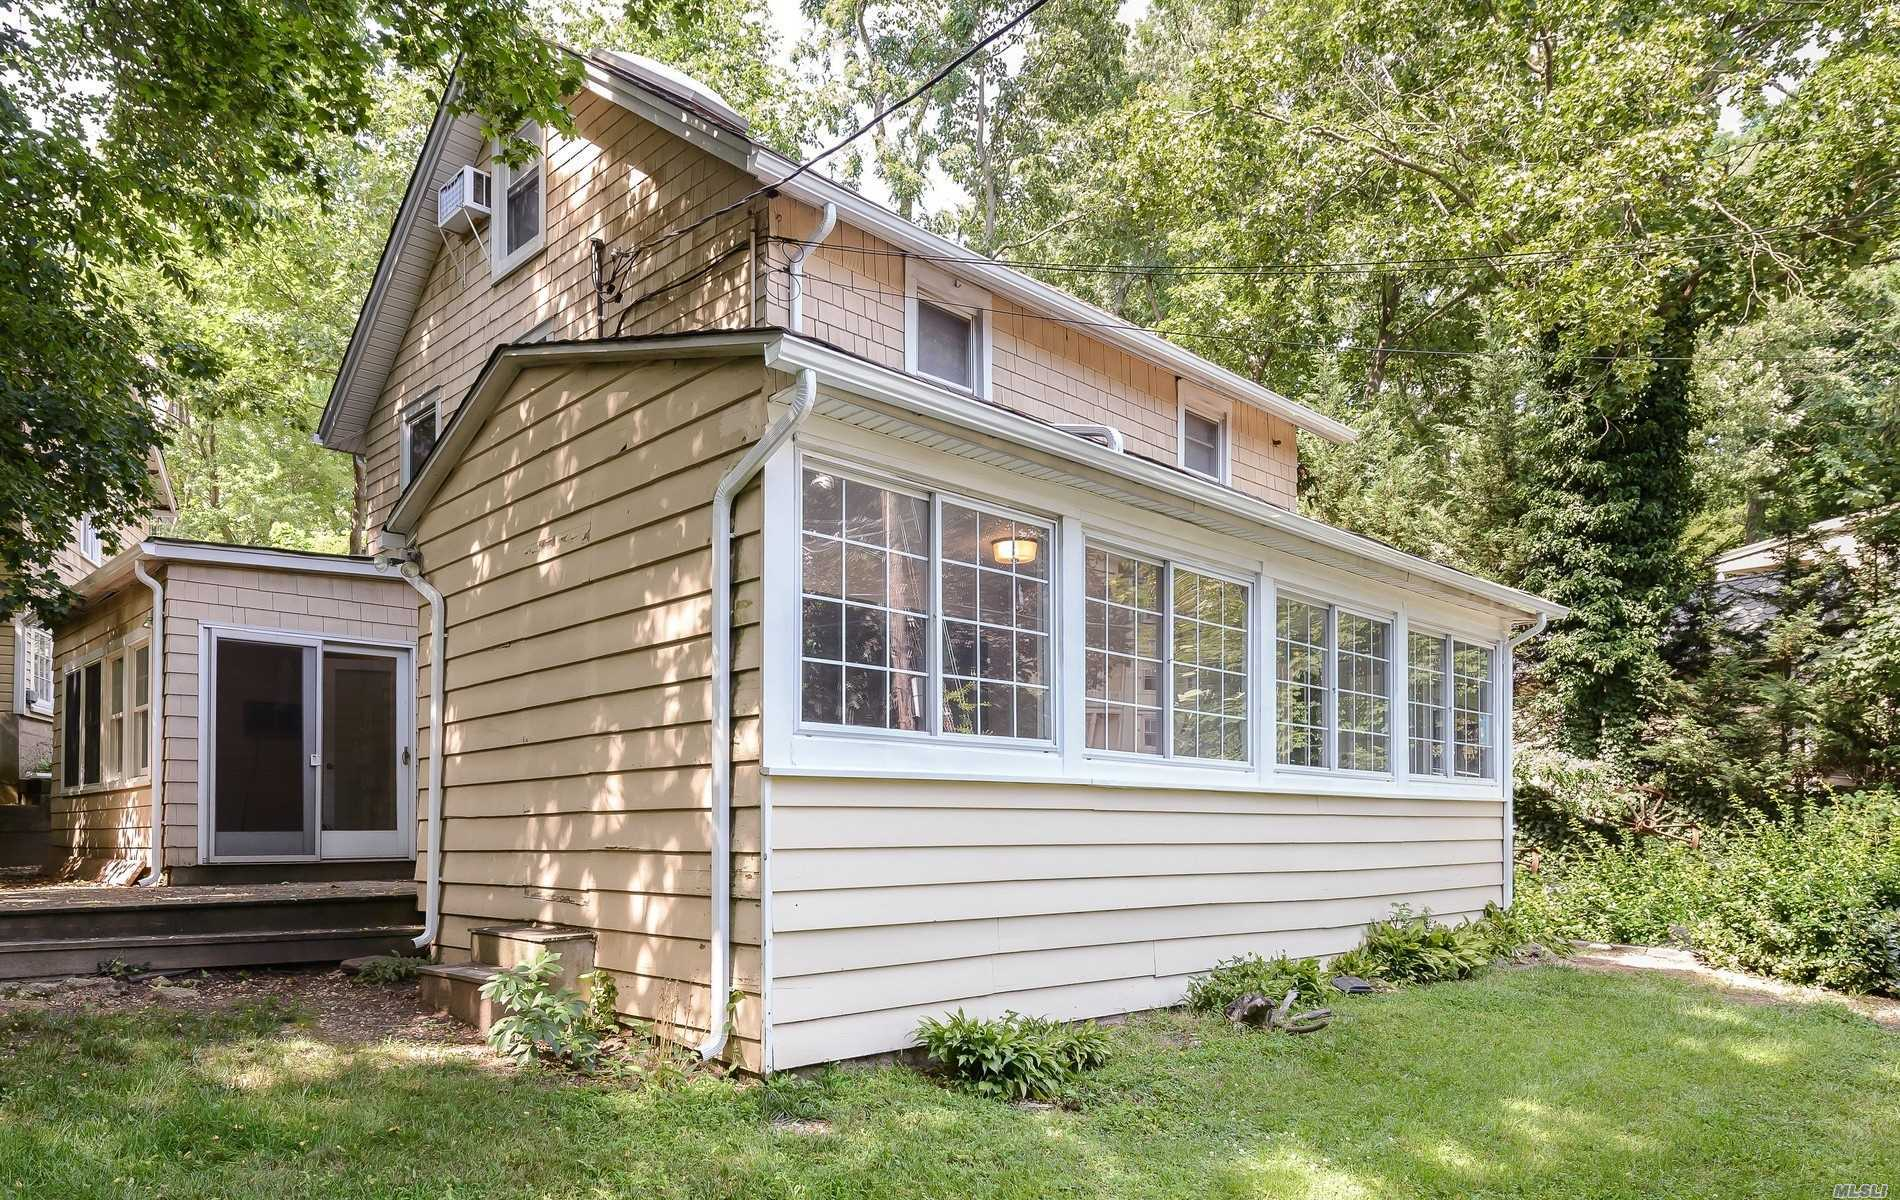 Beautiful Newly Renovated, Bright & Sunny with Private Patio Off Master Bedroom, Private Entrance. Utilities Included. One Dog Under 20lbs.